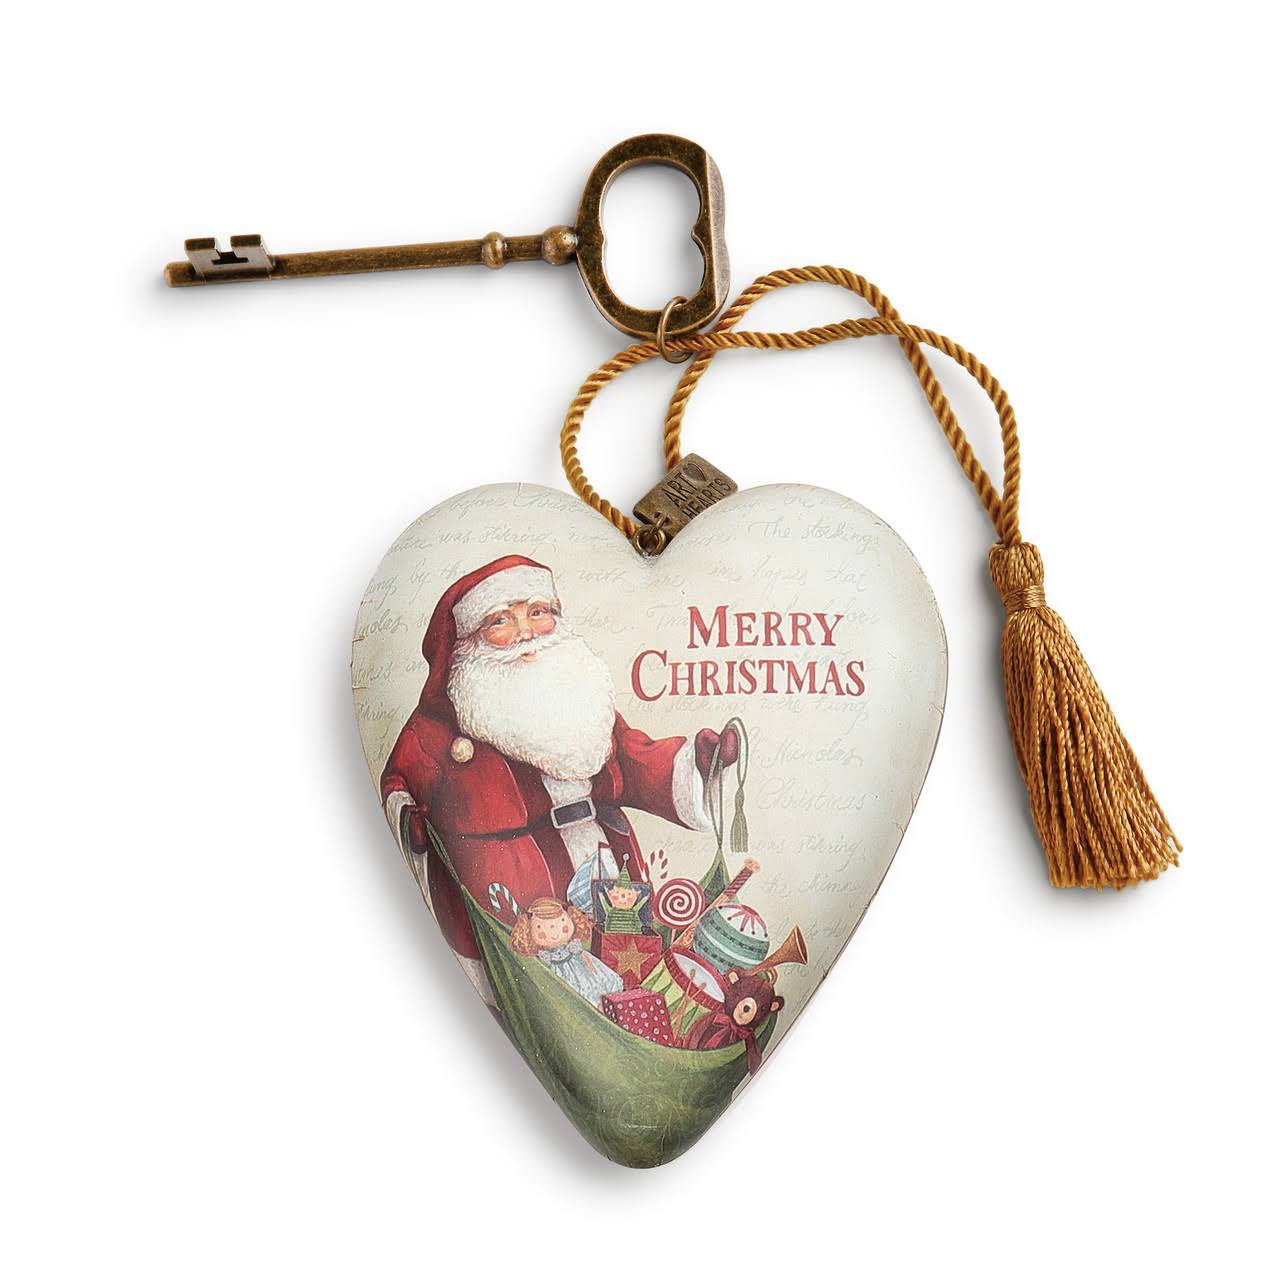 Demdaco Wall Art 'Merry Christmas' Heart Décor One-Size